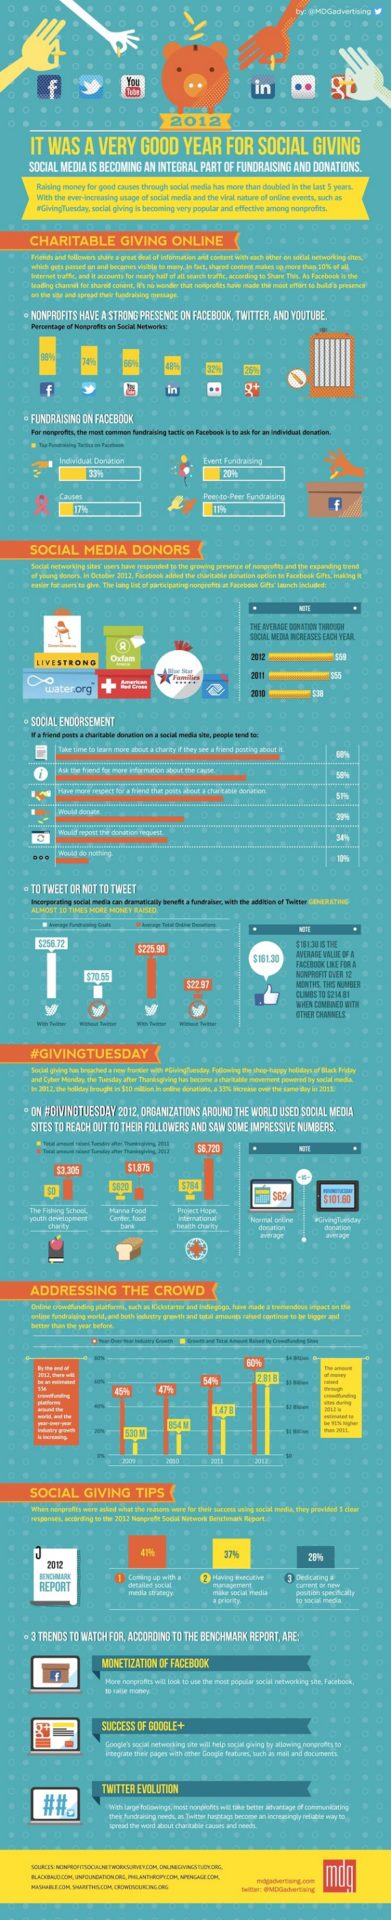 social giving infographic